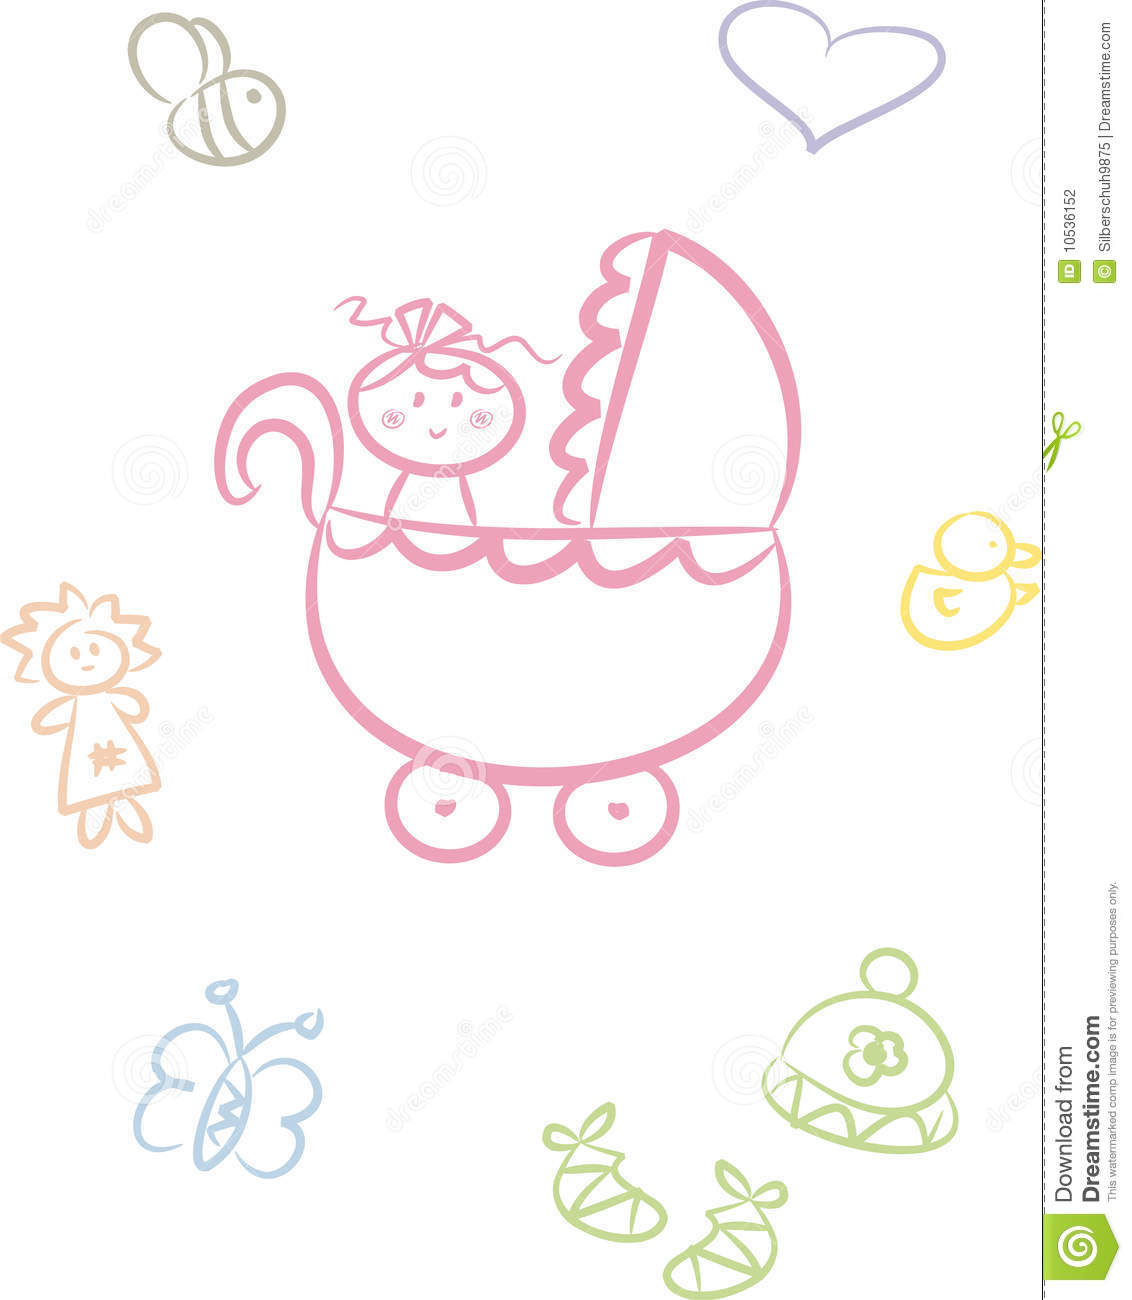 Toddler Stroller Toy Cute Baby Doodle Set Girl Stock Photography Image